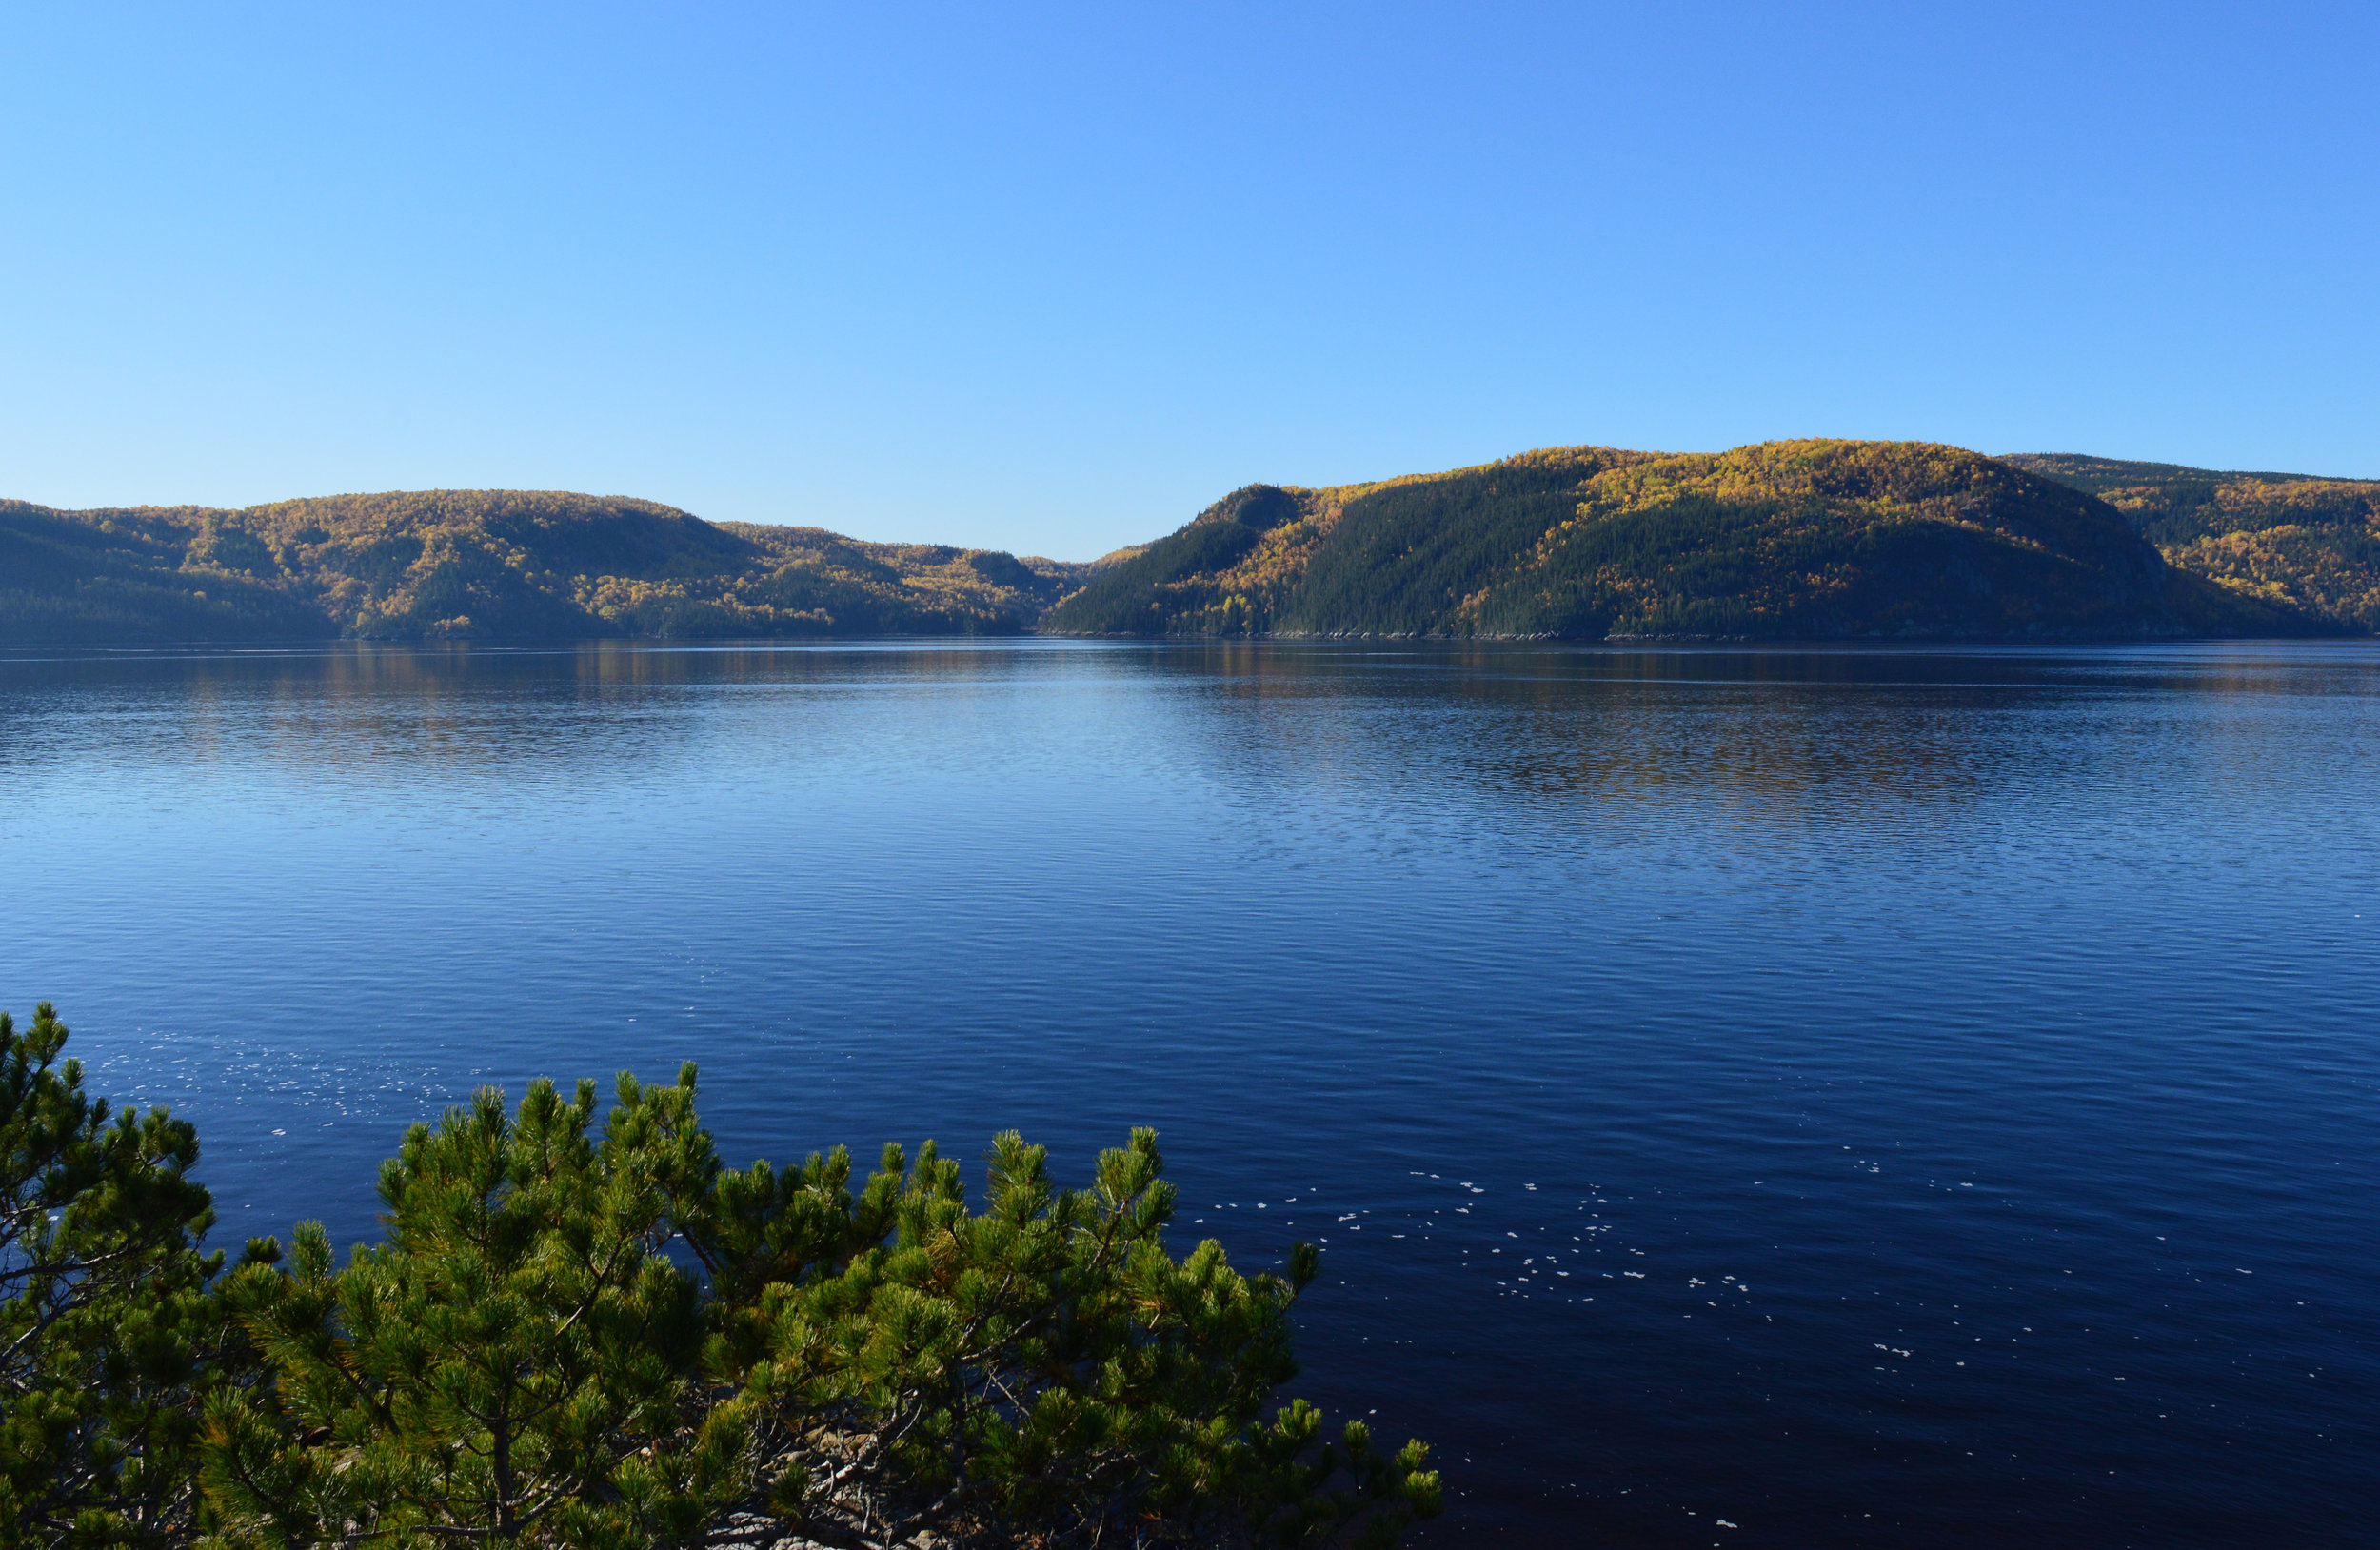 The Saguenay River, to where the beluga whales come less frequently now.